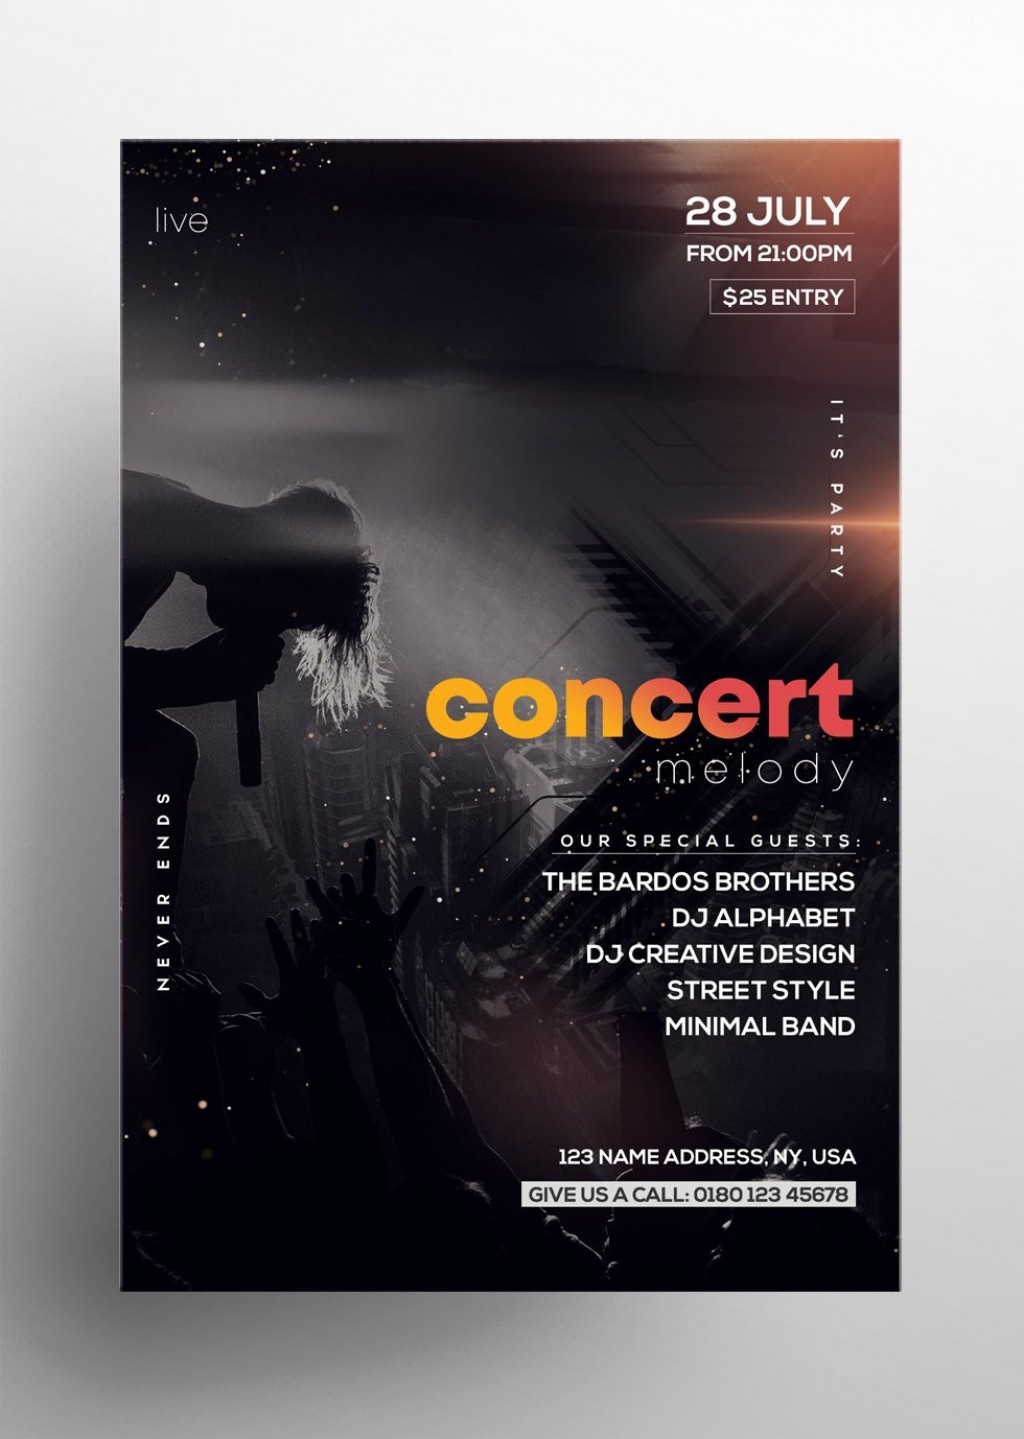 004 Surprising Free Concert Poster Template Sample  Word Classical MusicLarge